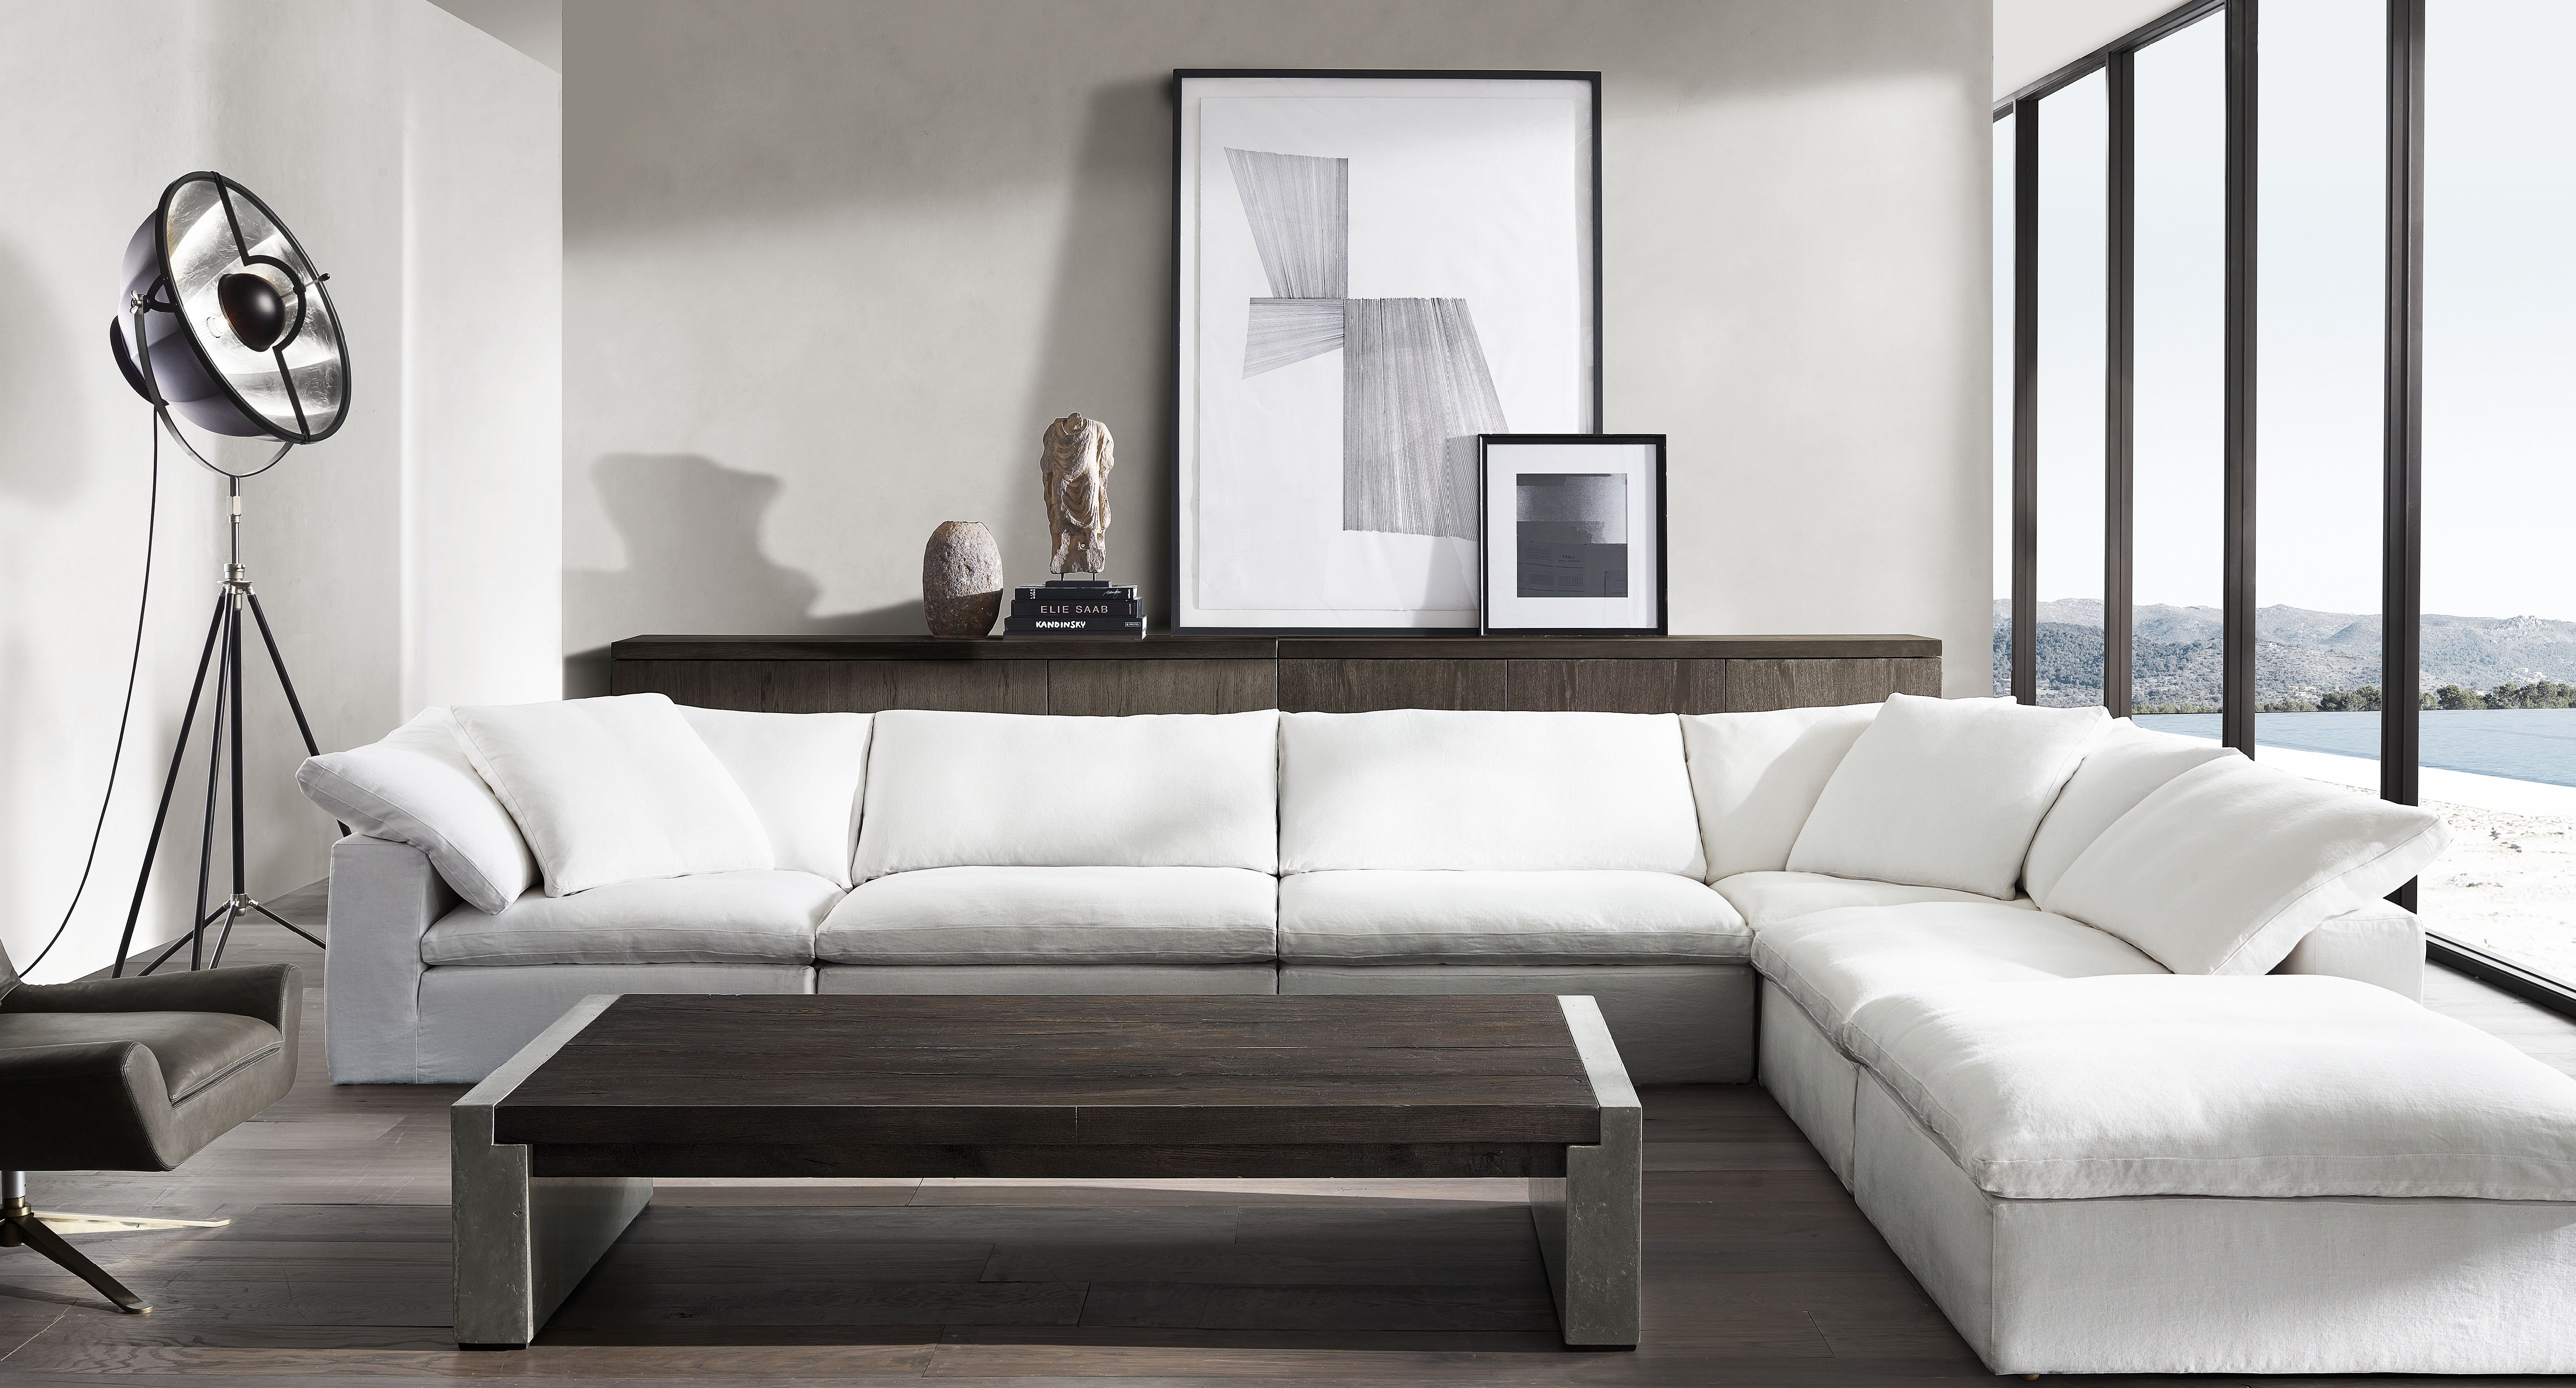 Appealing Restoration Hardware Sectional Sofas 49 For Lee Sectional Intended For Restoration Hardware Sectional Sofas (Image 2 of 10)